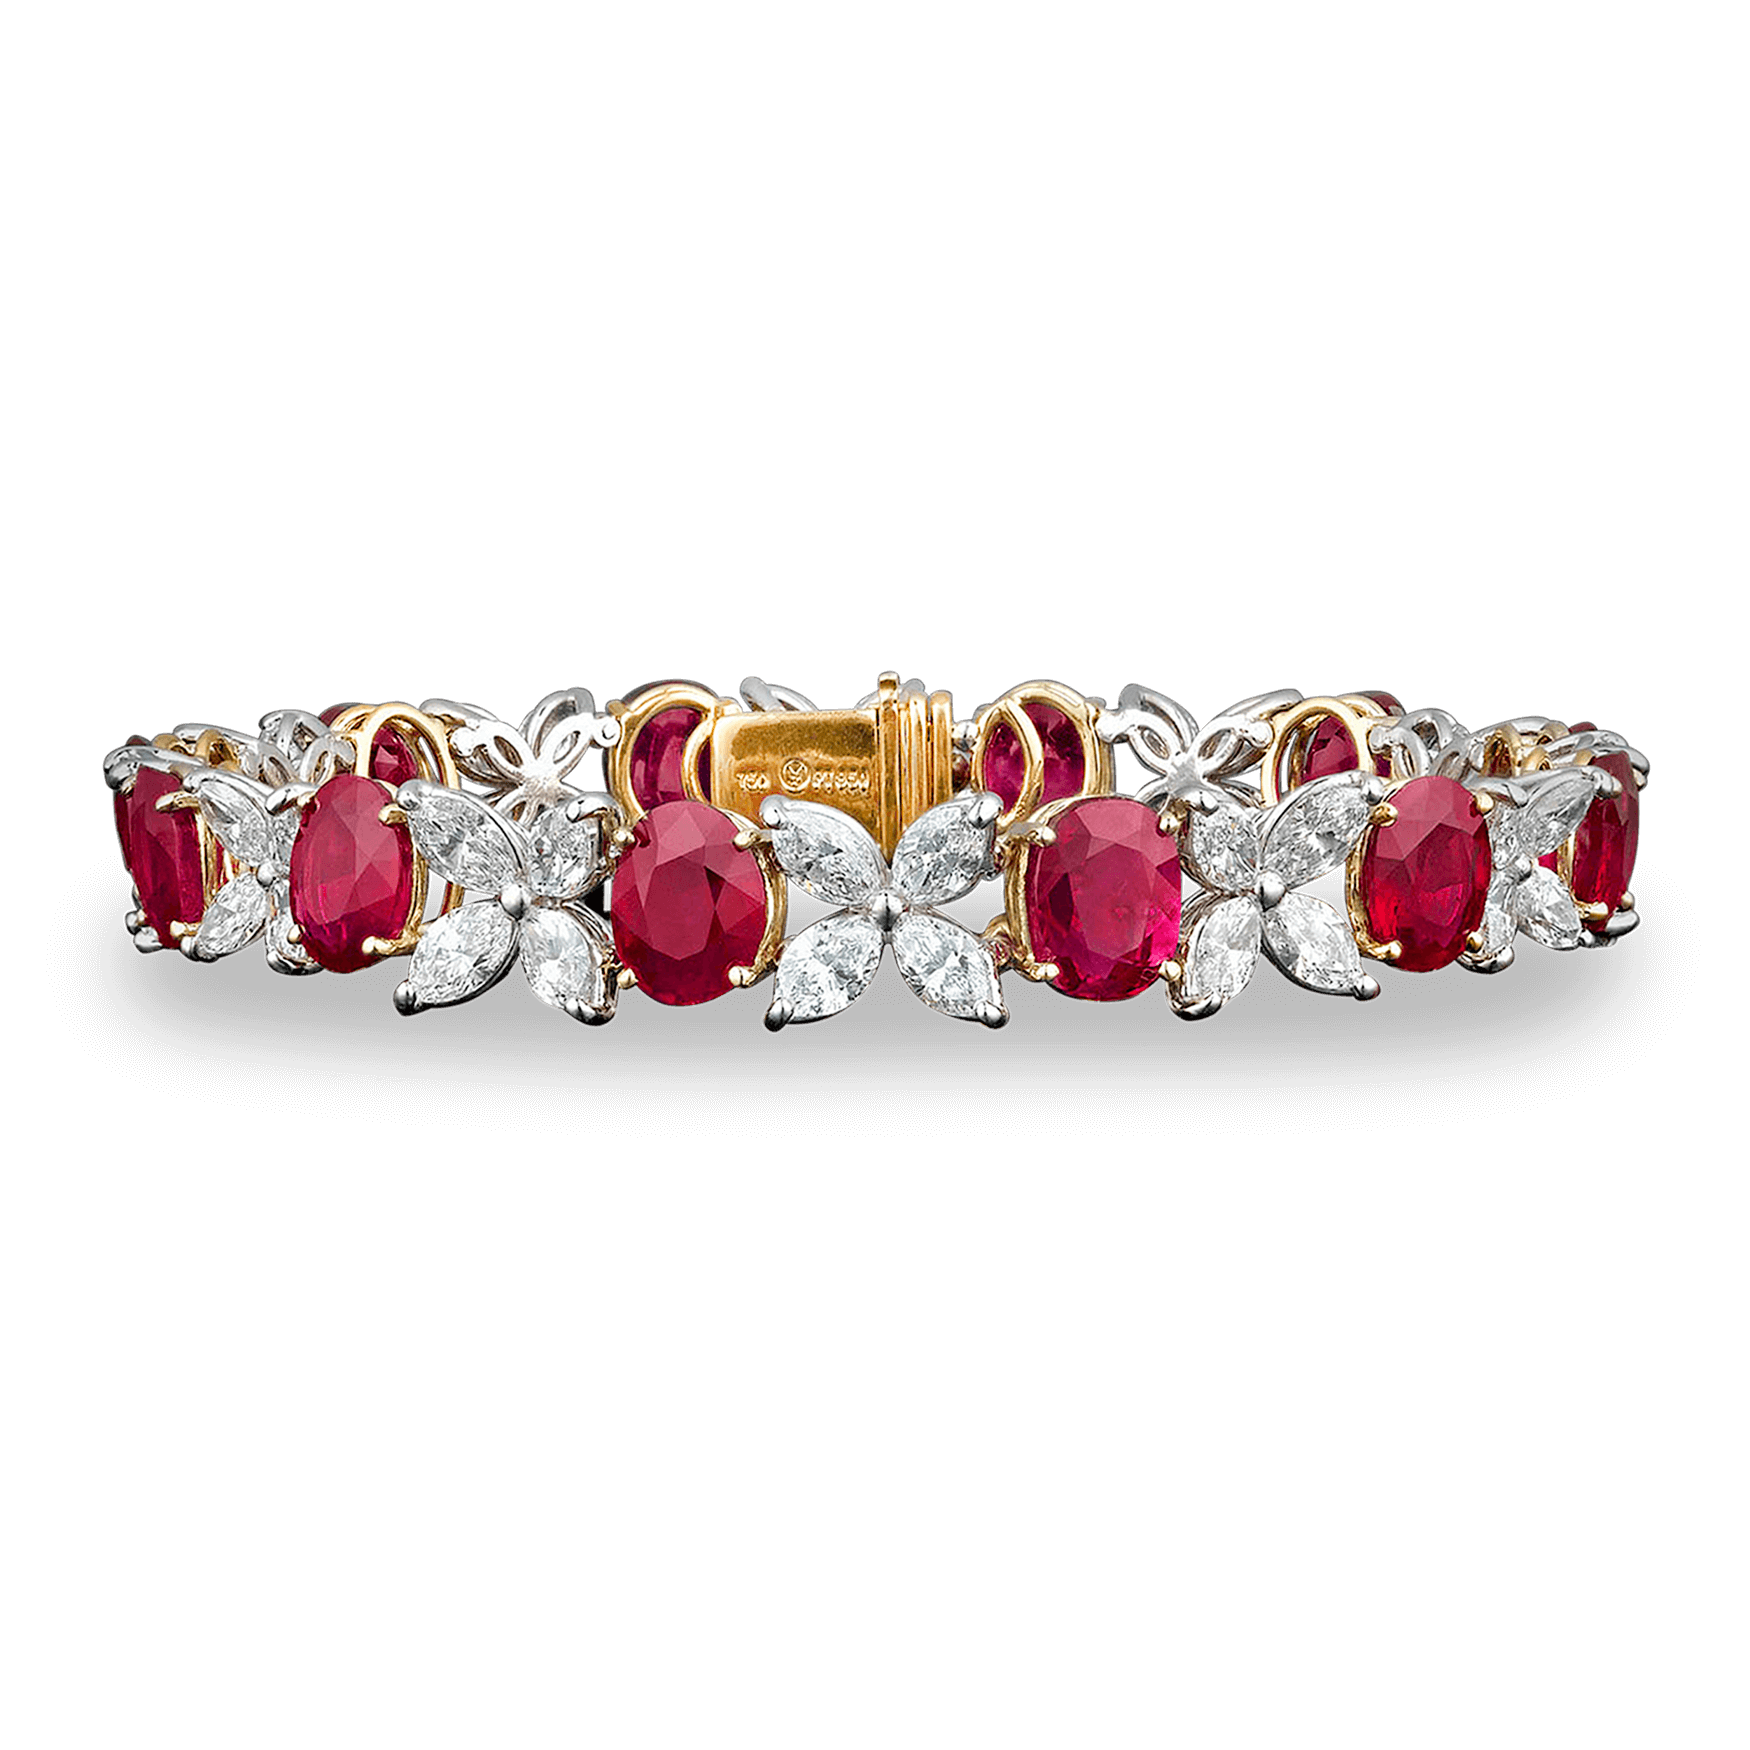 Burma Ruby and Diamond Bracelet